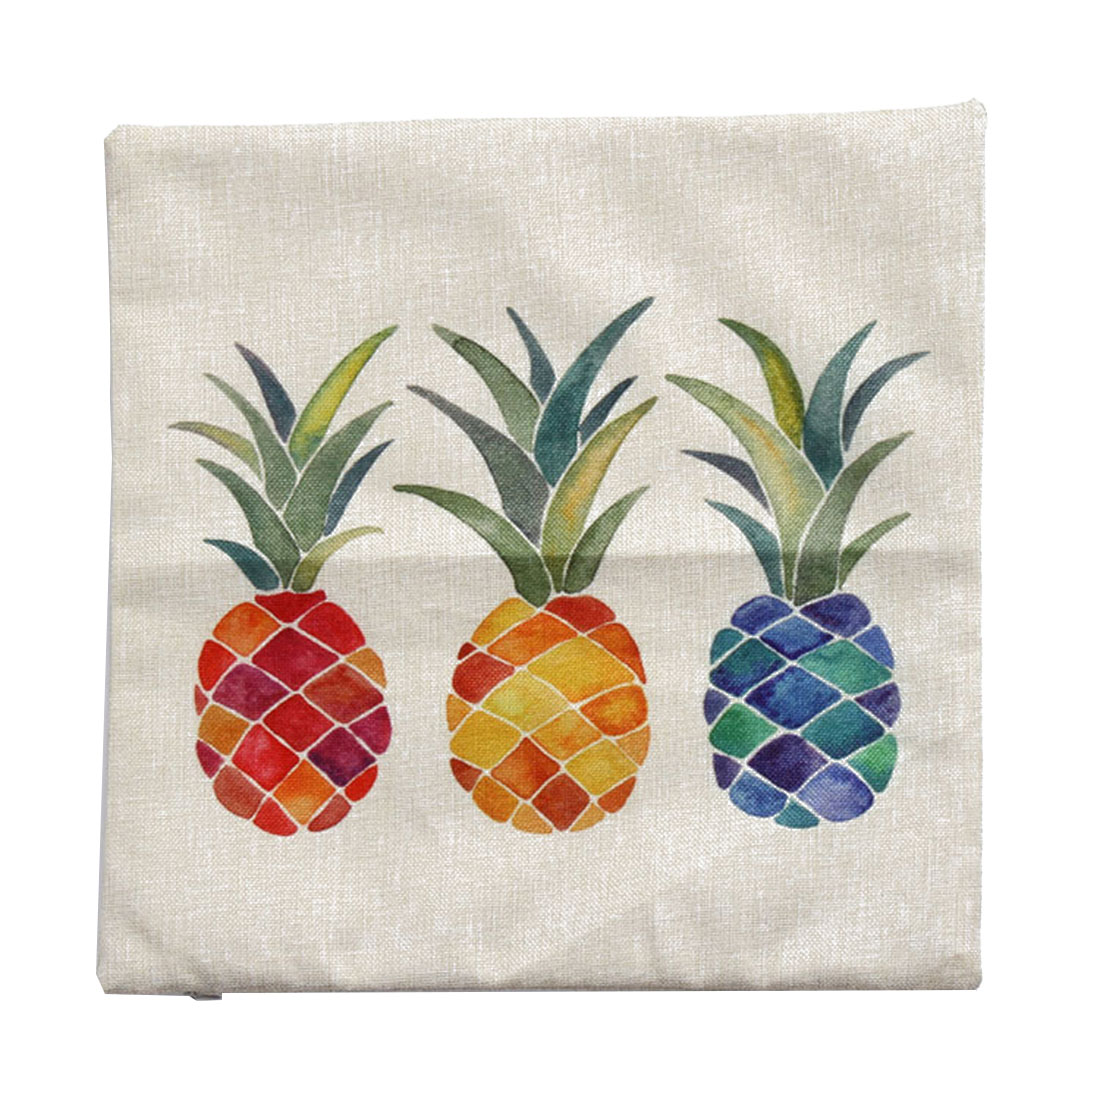 Piccocasa Home Sofa Linen Multicolor Pineapple Pattern Cushion Cover Pillow Case